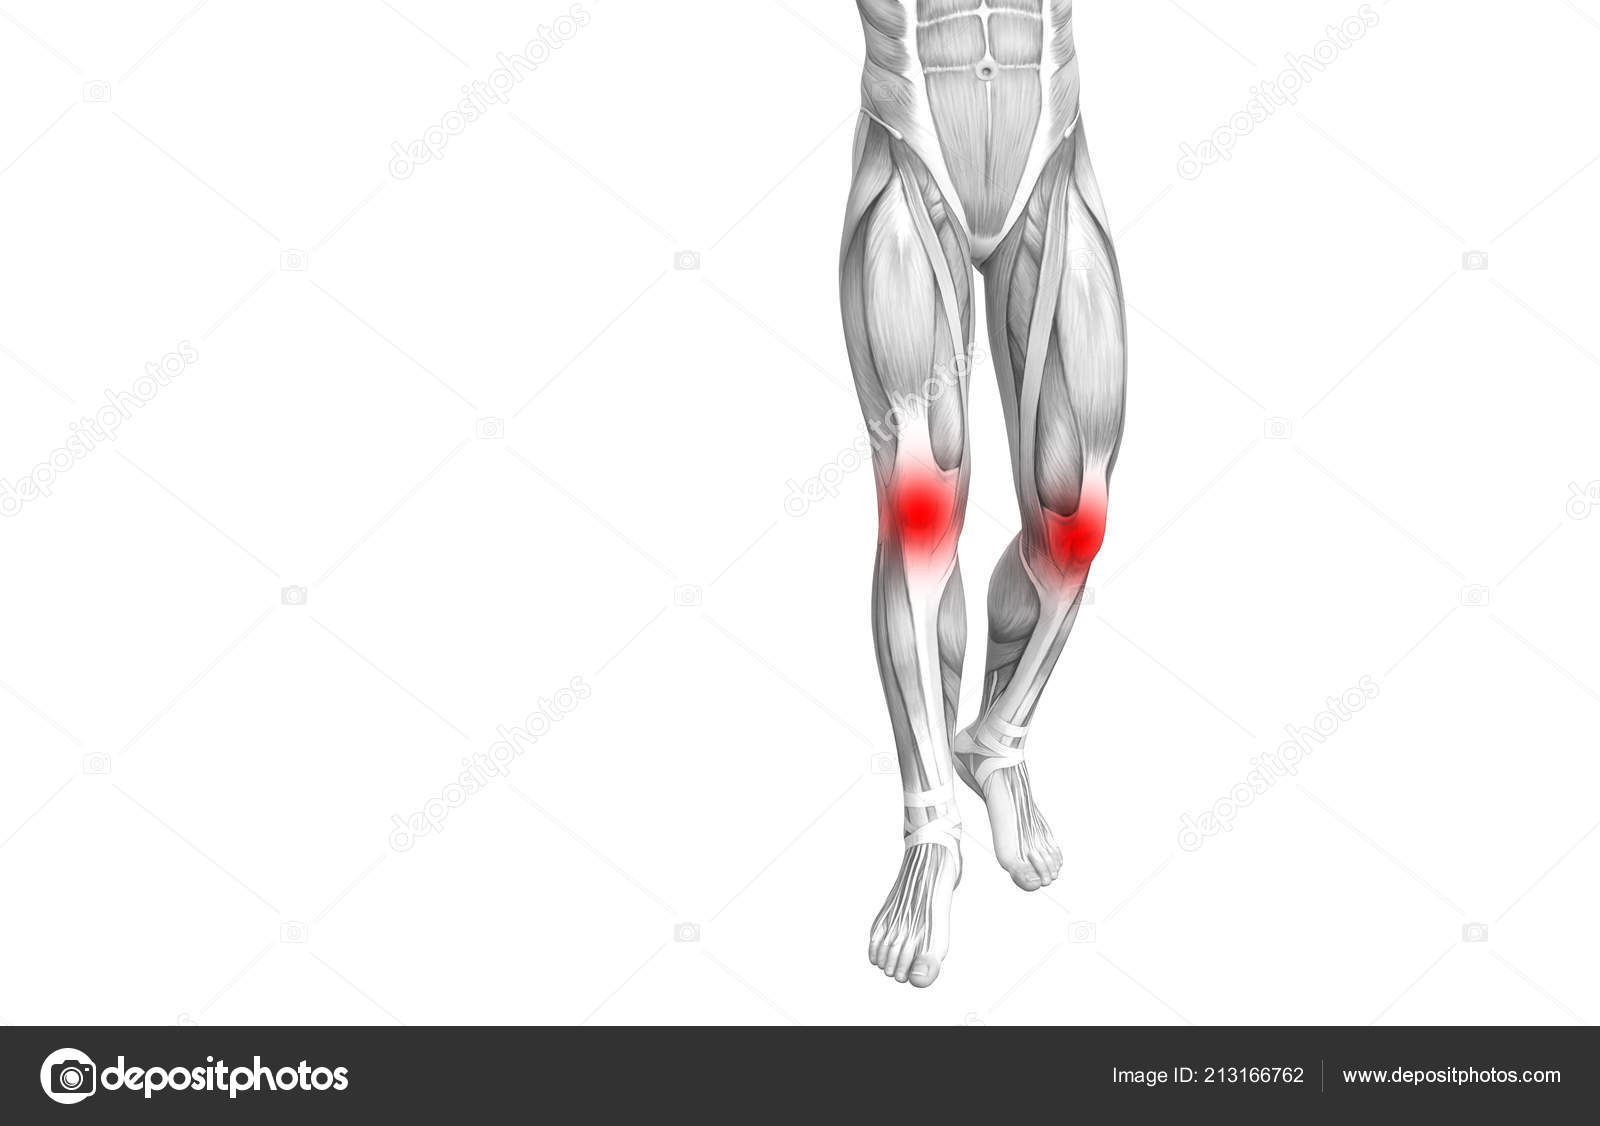 dolor intenso linear unit solfa syllable rodilla go against inflamacion